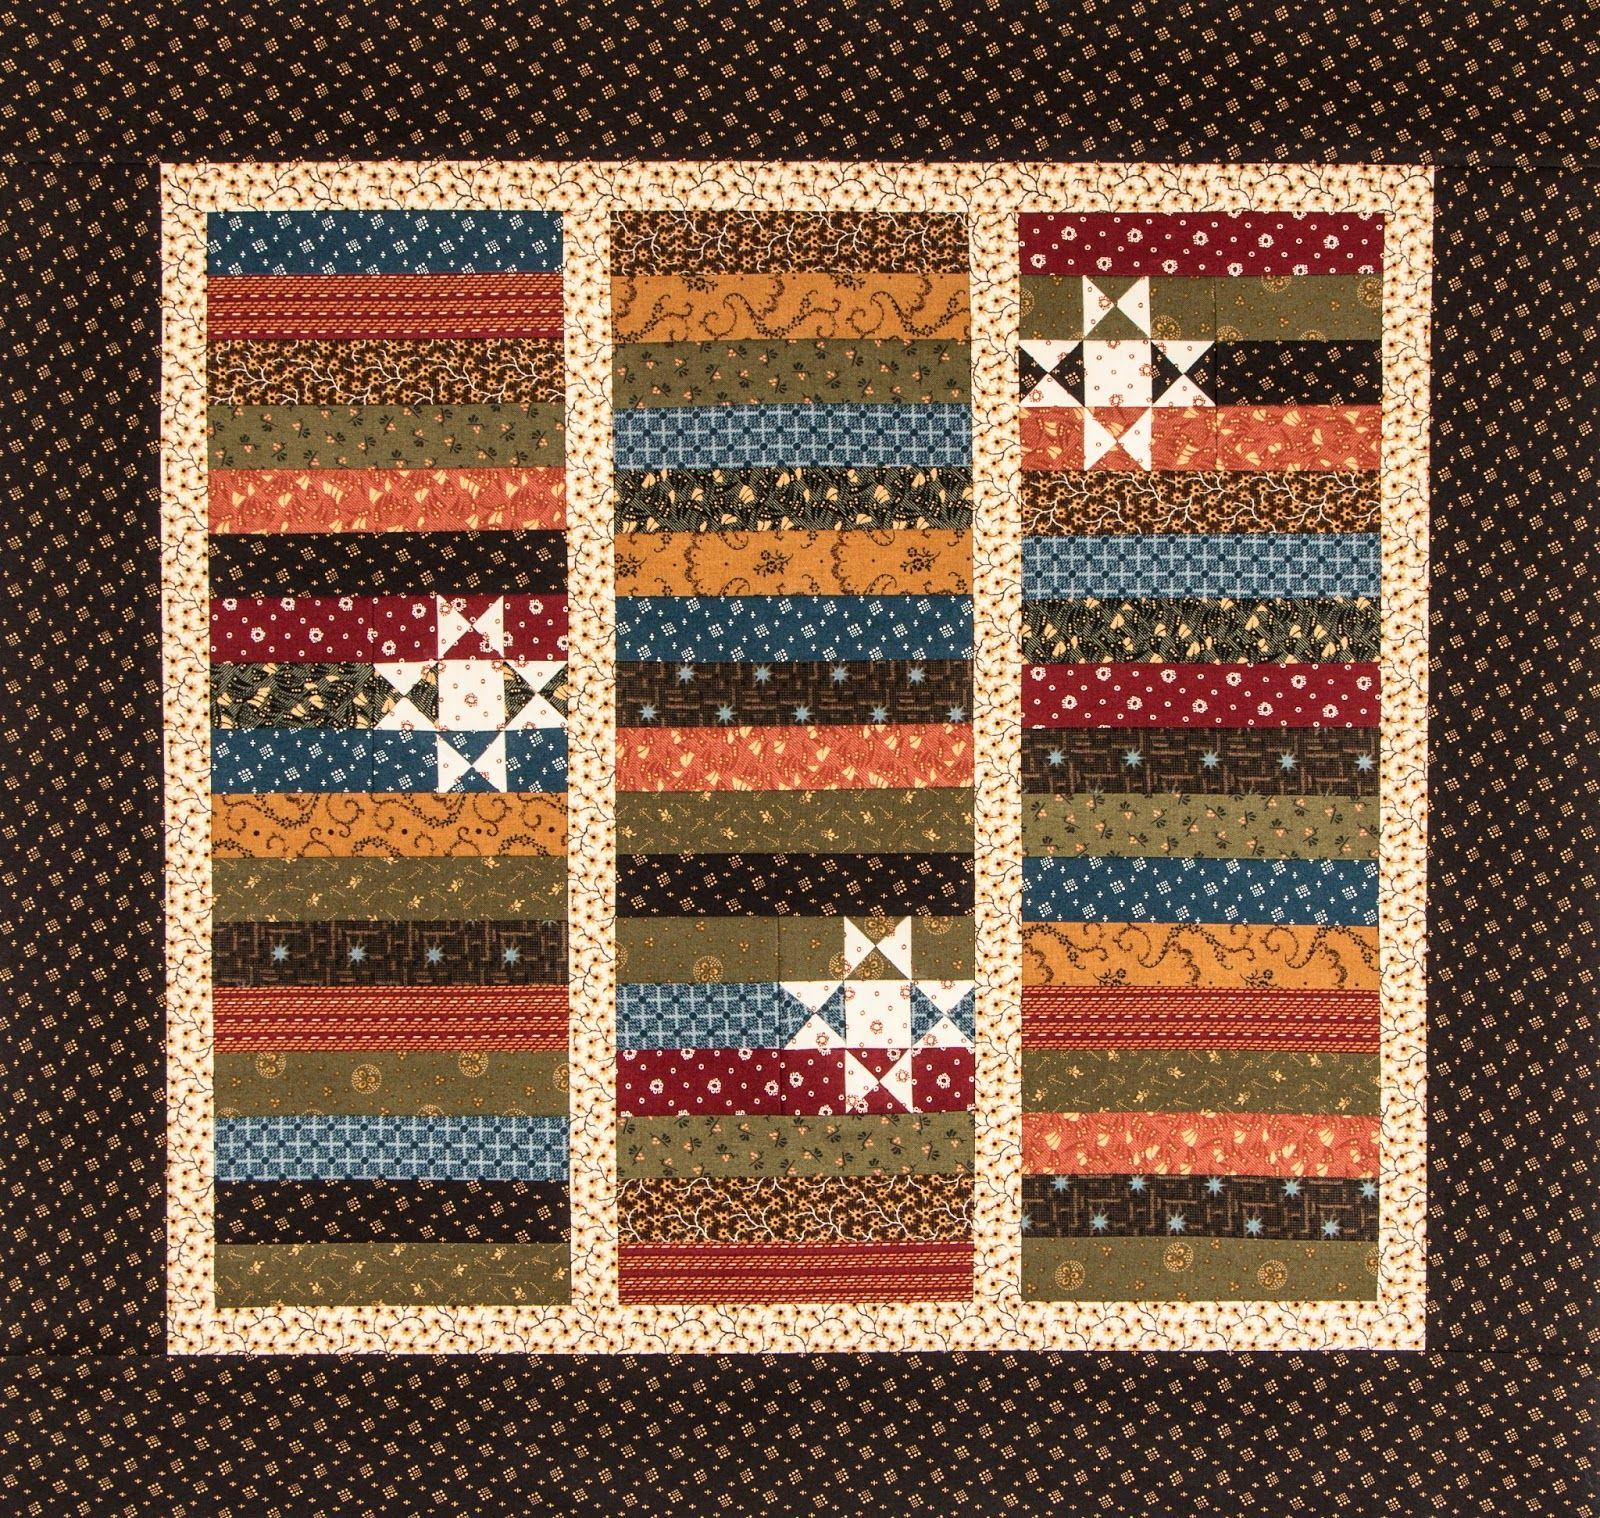 Old Quilt Block Patterns | Dance Quilt from the Second Annual ... : kindred spirits quilt shop - Adamdwight.com